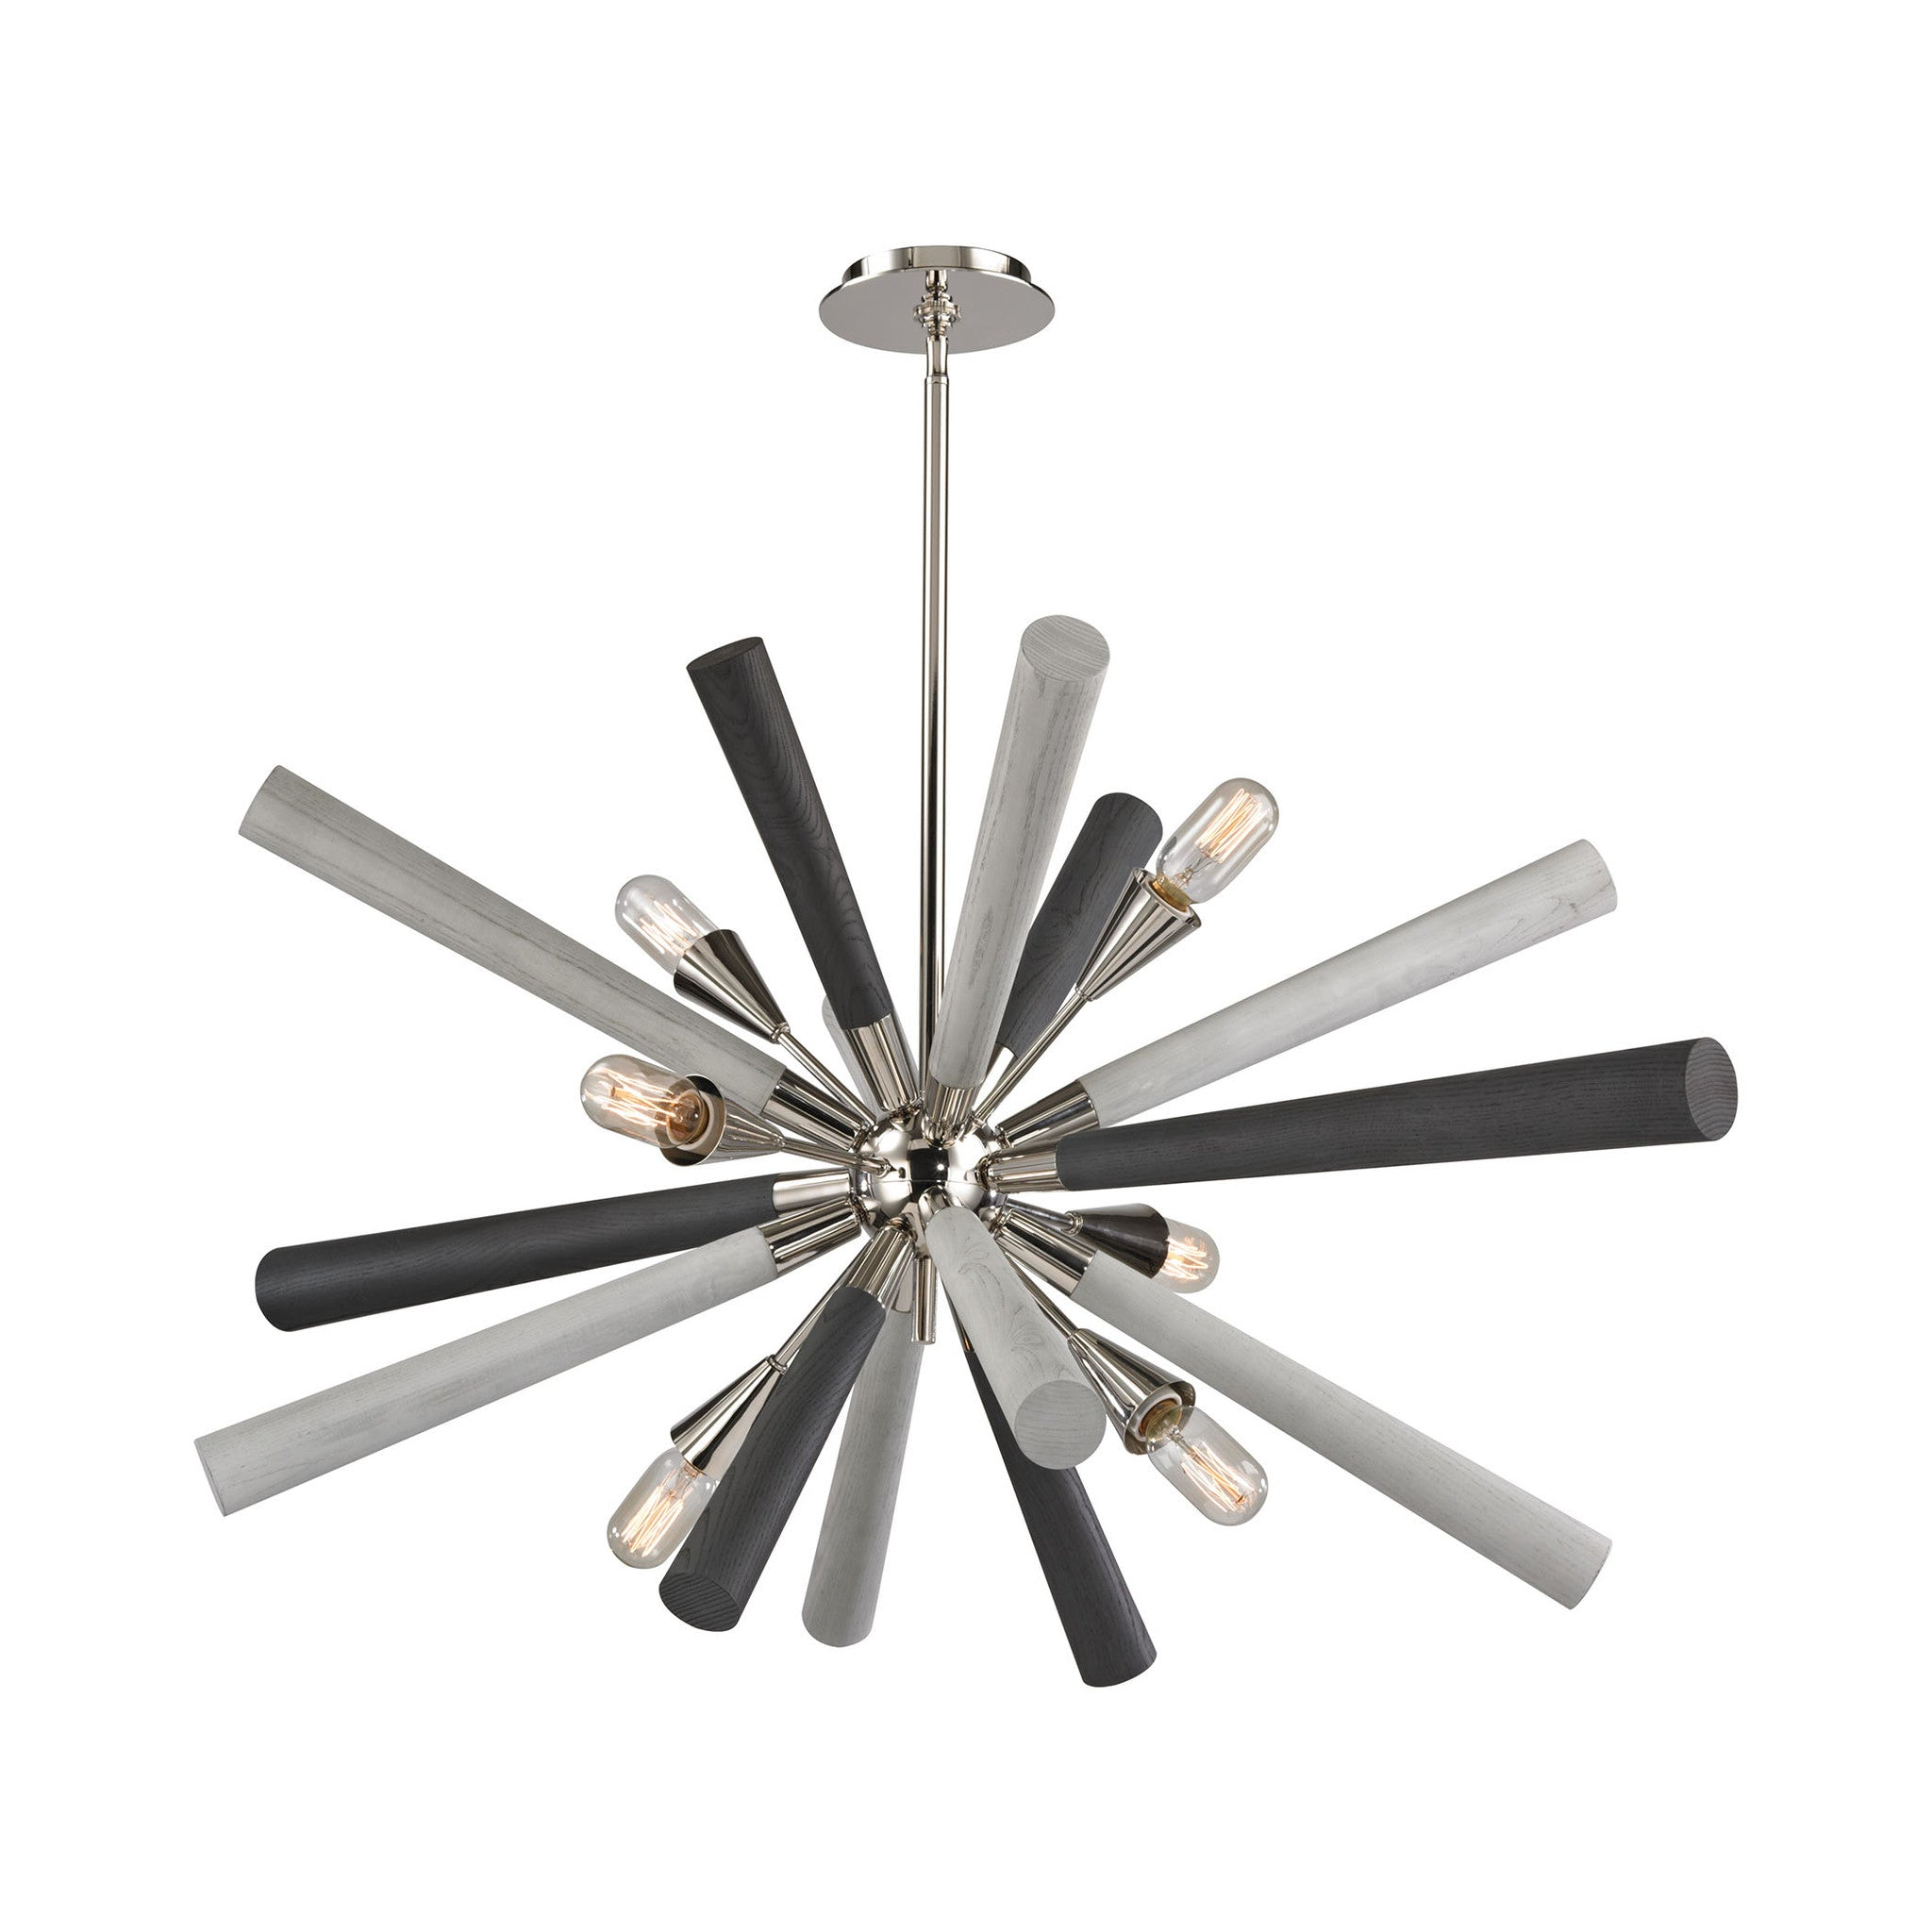 6 Light Solara Chandelier in Polished Nickel and Light-Dark Gray Washed Wood by Elk Lighting 32232/6